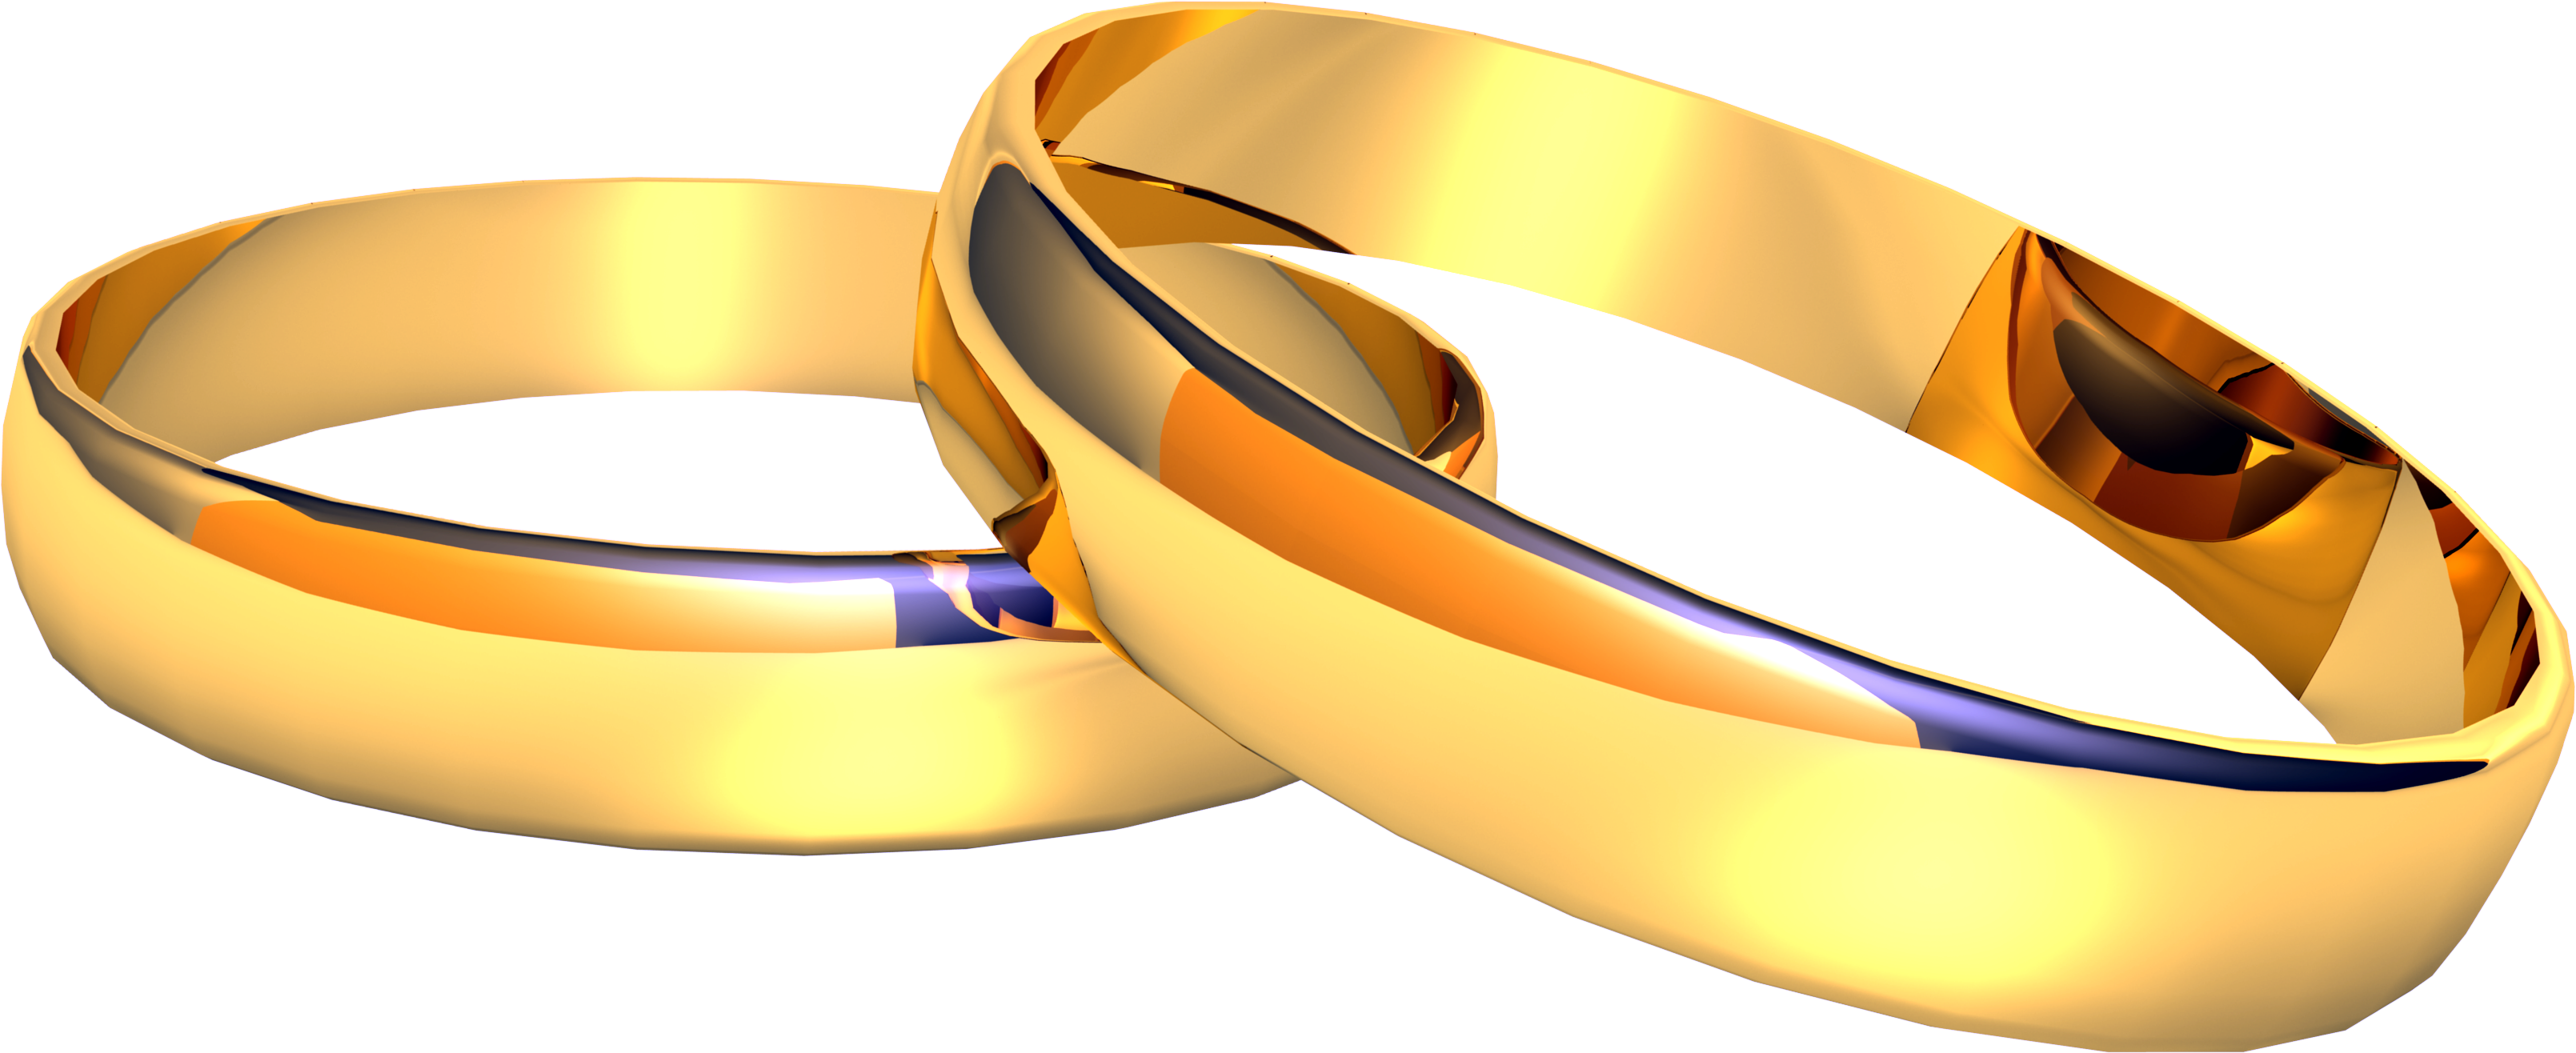 15 Free Photoshop PNG Files Wedding Rings Images